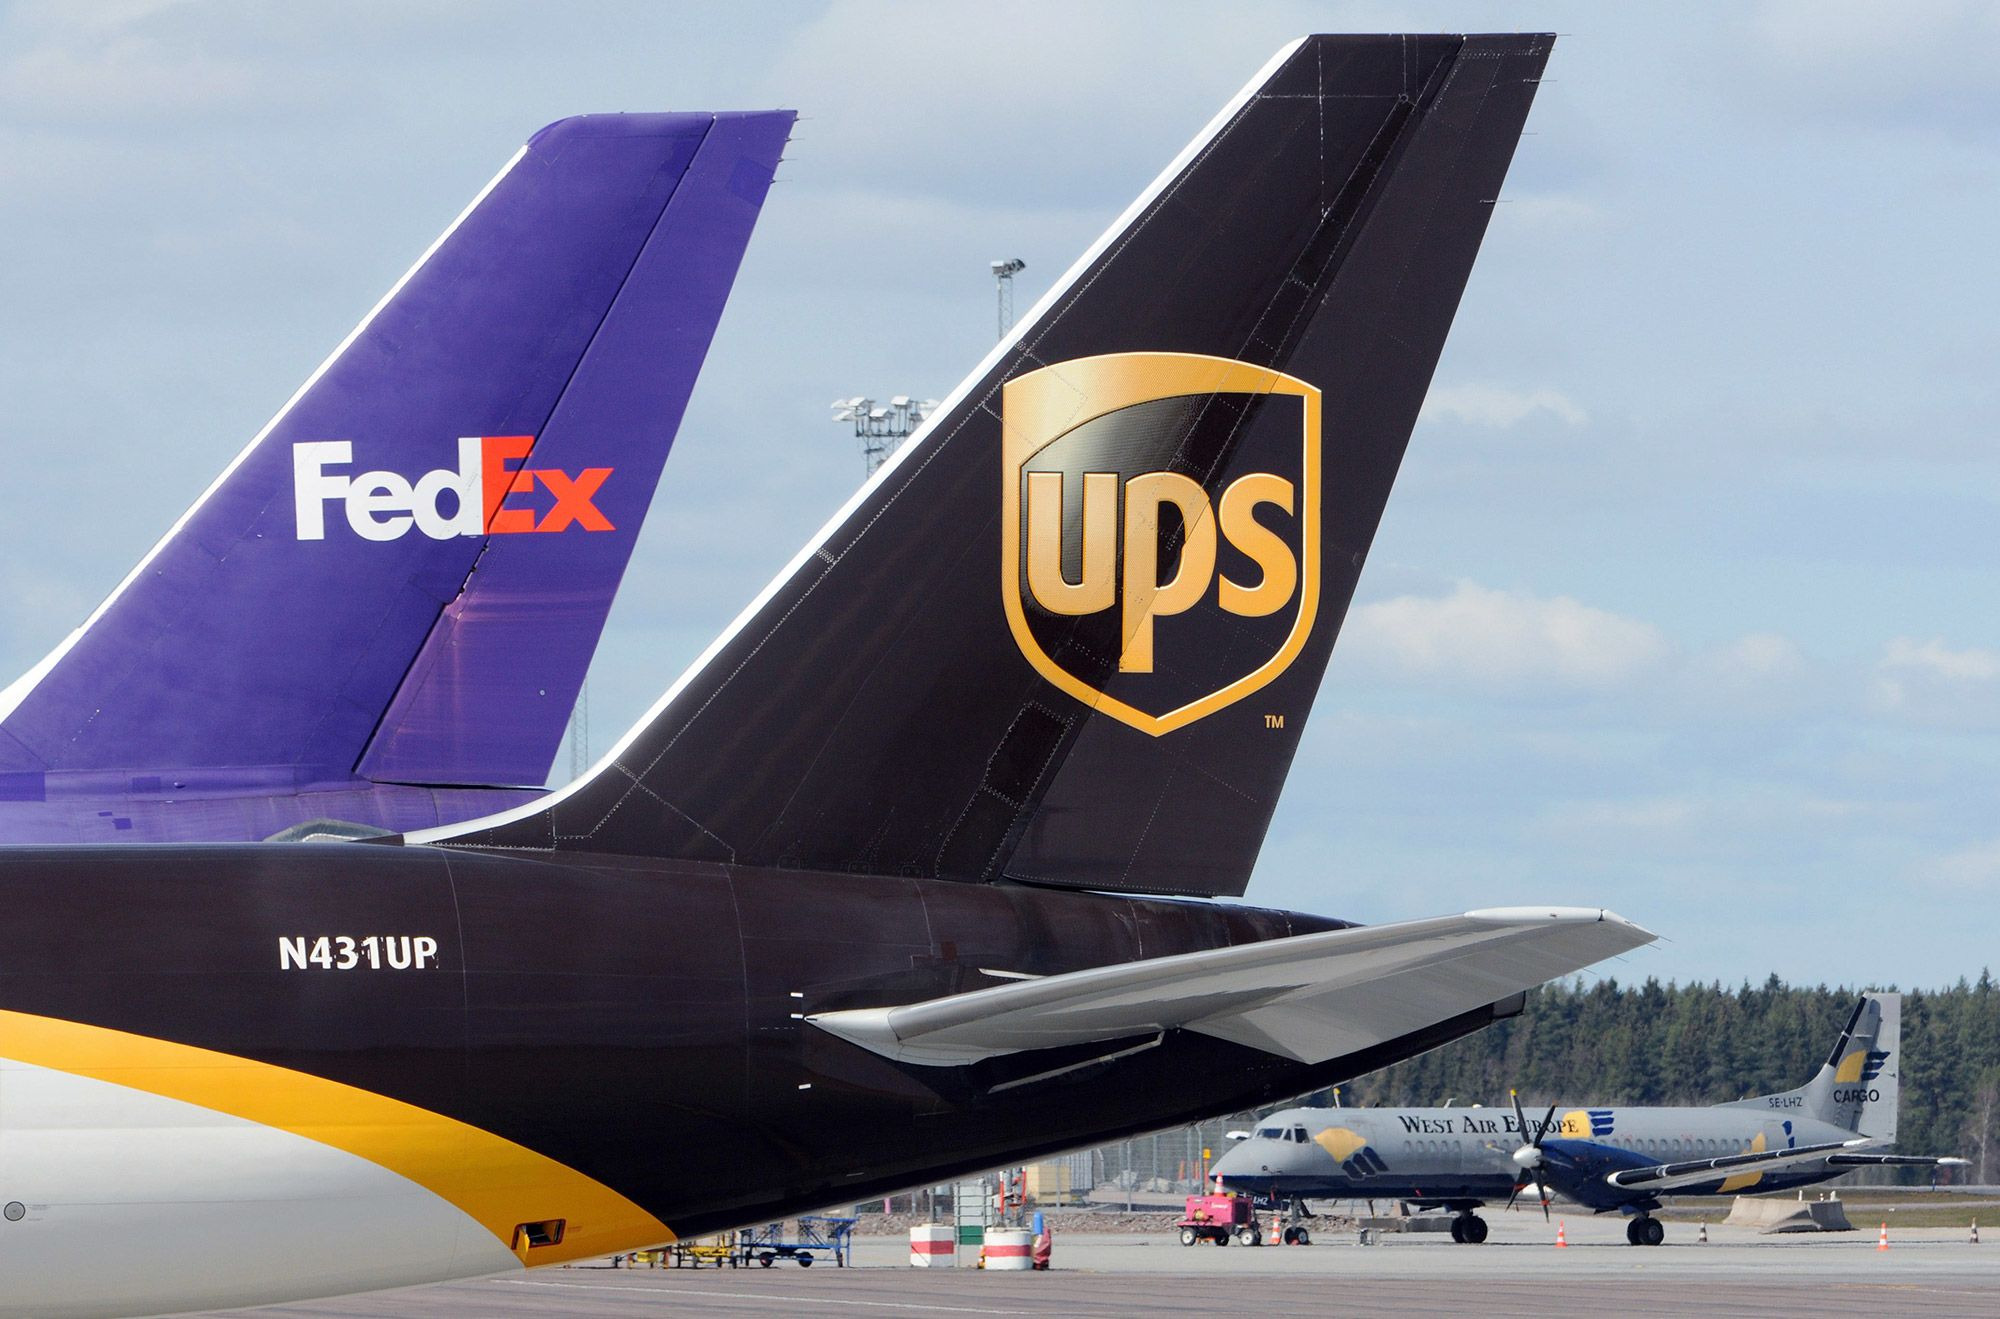 Goldman says buy UPS, Fedex because concern Amazon is cutting them out is overblown